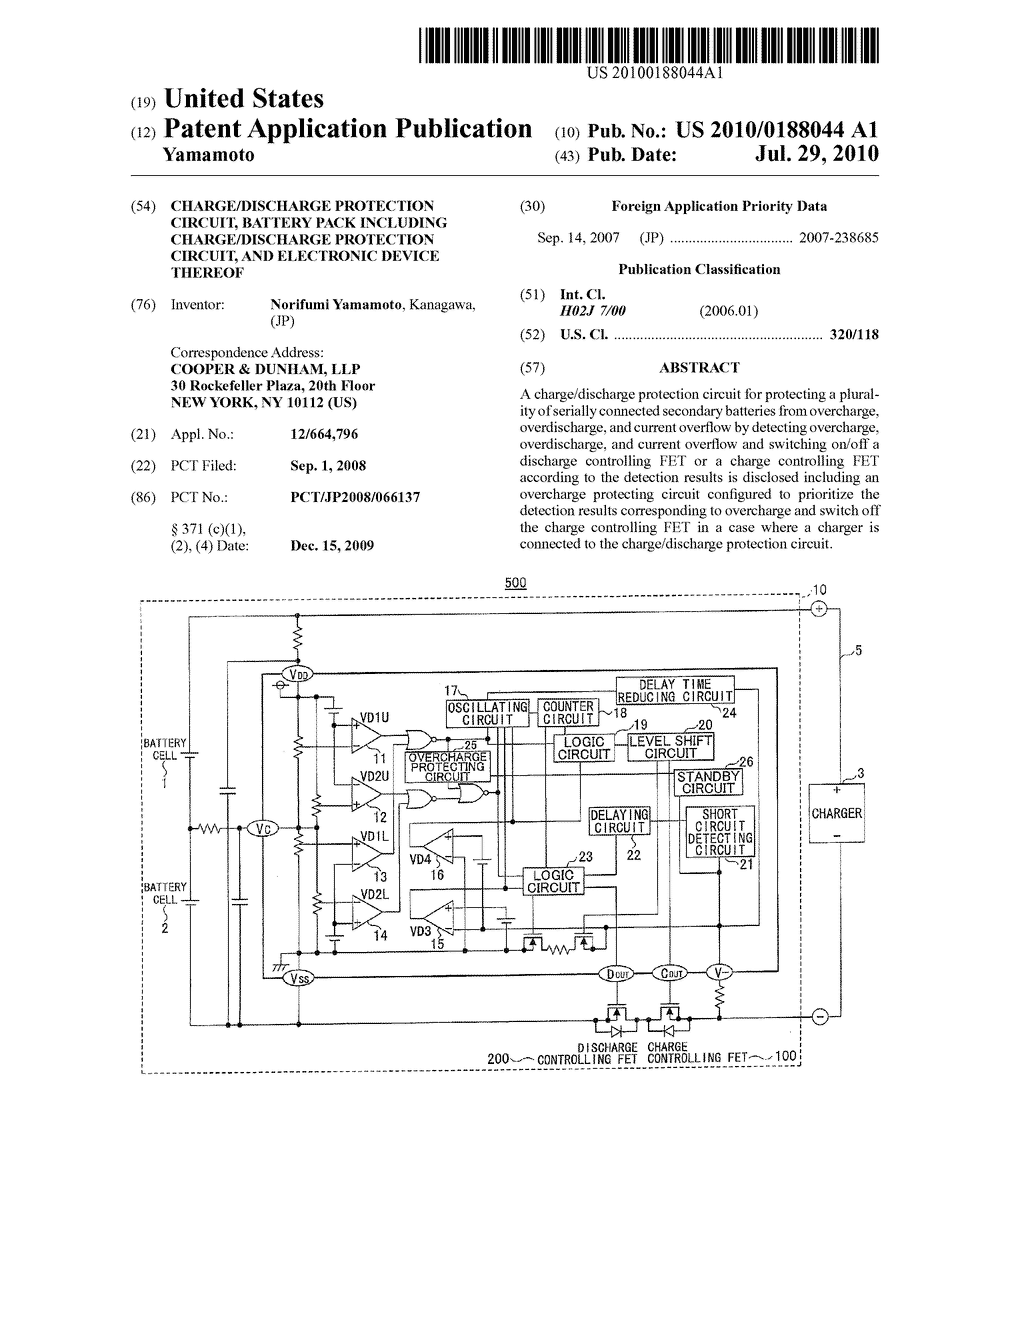 CHARGE/DISCHARGE PROTECTION CIRCUIT, BATTERY PACK INCLUDING CHARGE/DISCHARGE PROTECTION CIRCUIT, AND ELECTRONIC DEVICE THEREOF - diagram, schematic, and image 01